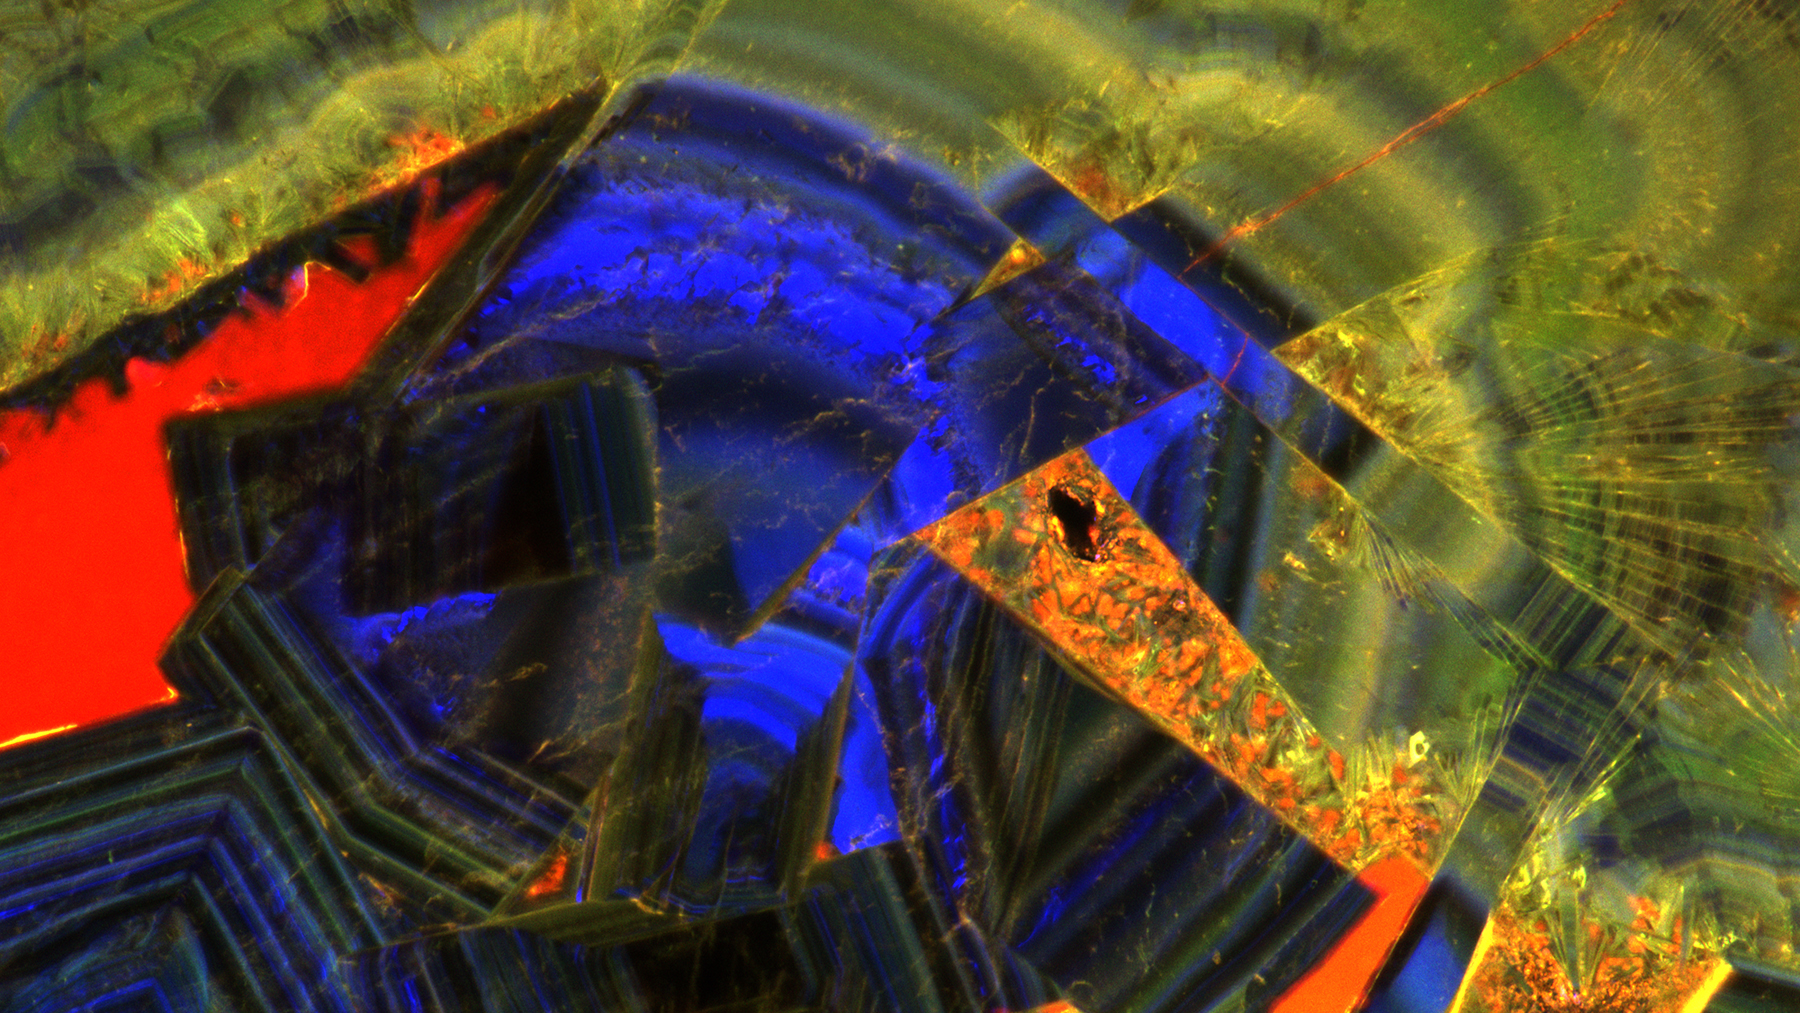 A fluorescent microscope image of a thin section of a human kidney stone reveals a complex history of crystal growth layering, fracturing, dissolution and recrystallization.  Image courtesy of Mayandi Sivaguru